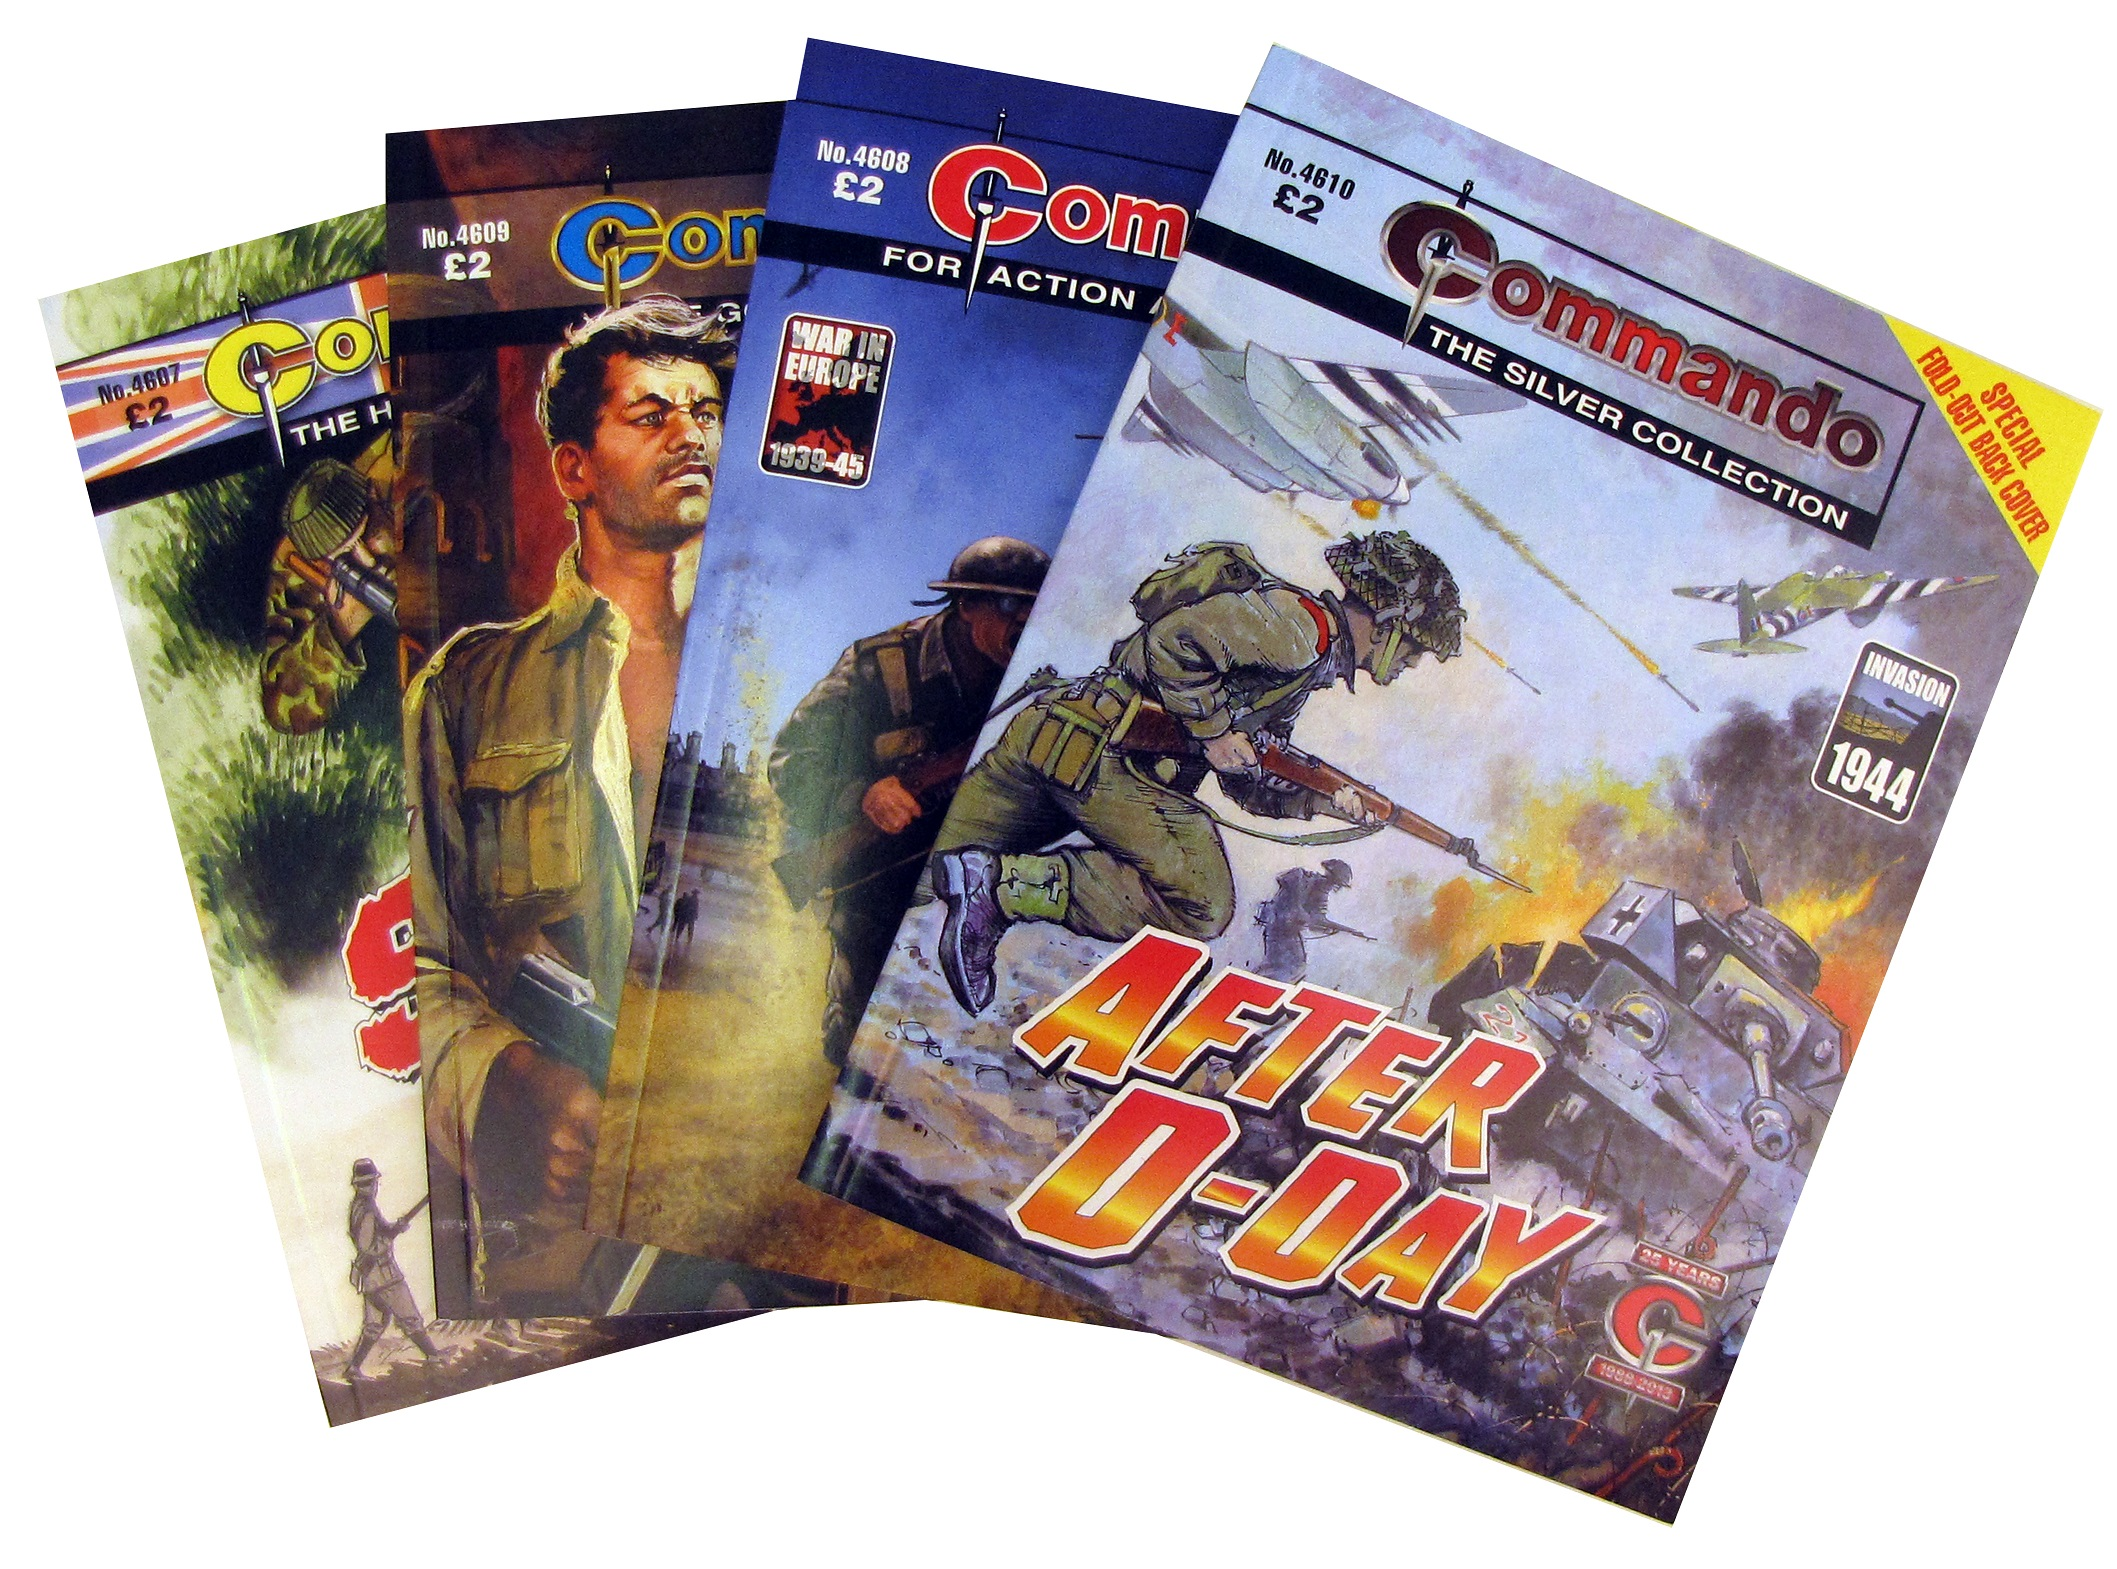 Commando Gatefold Covers